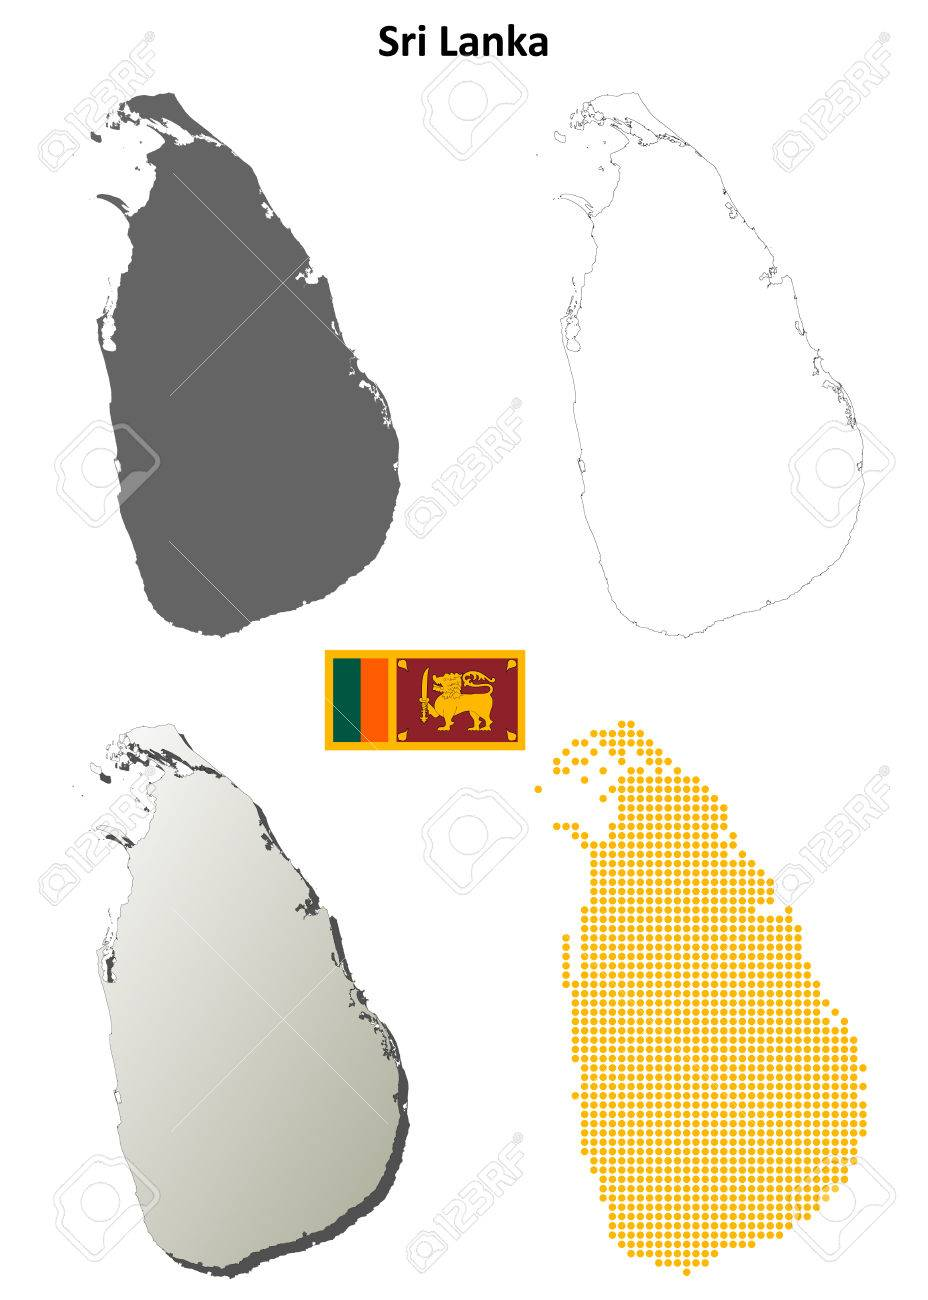 Sri Lanka Blank Detailed Outline Map Set Royalty Free Cliparts ...